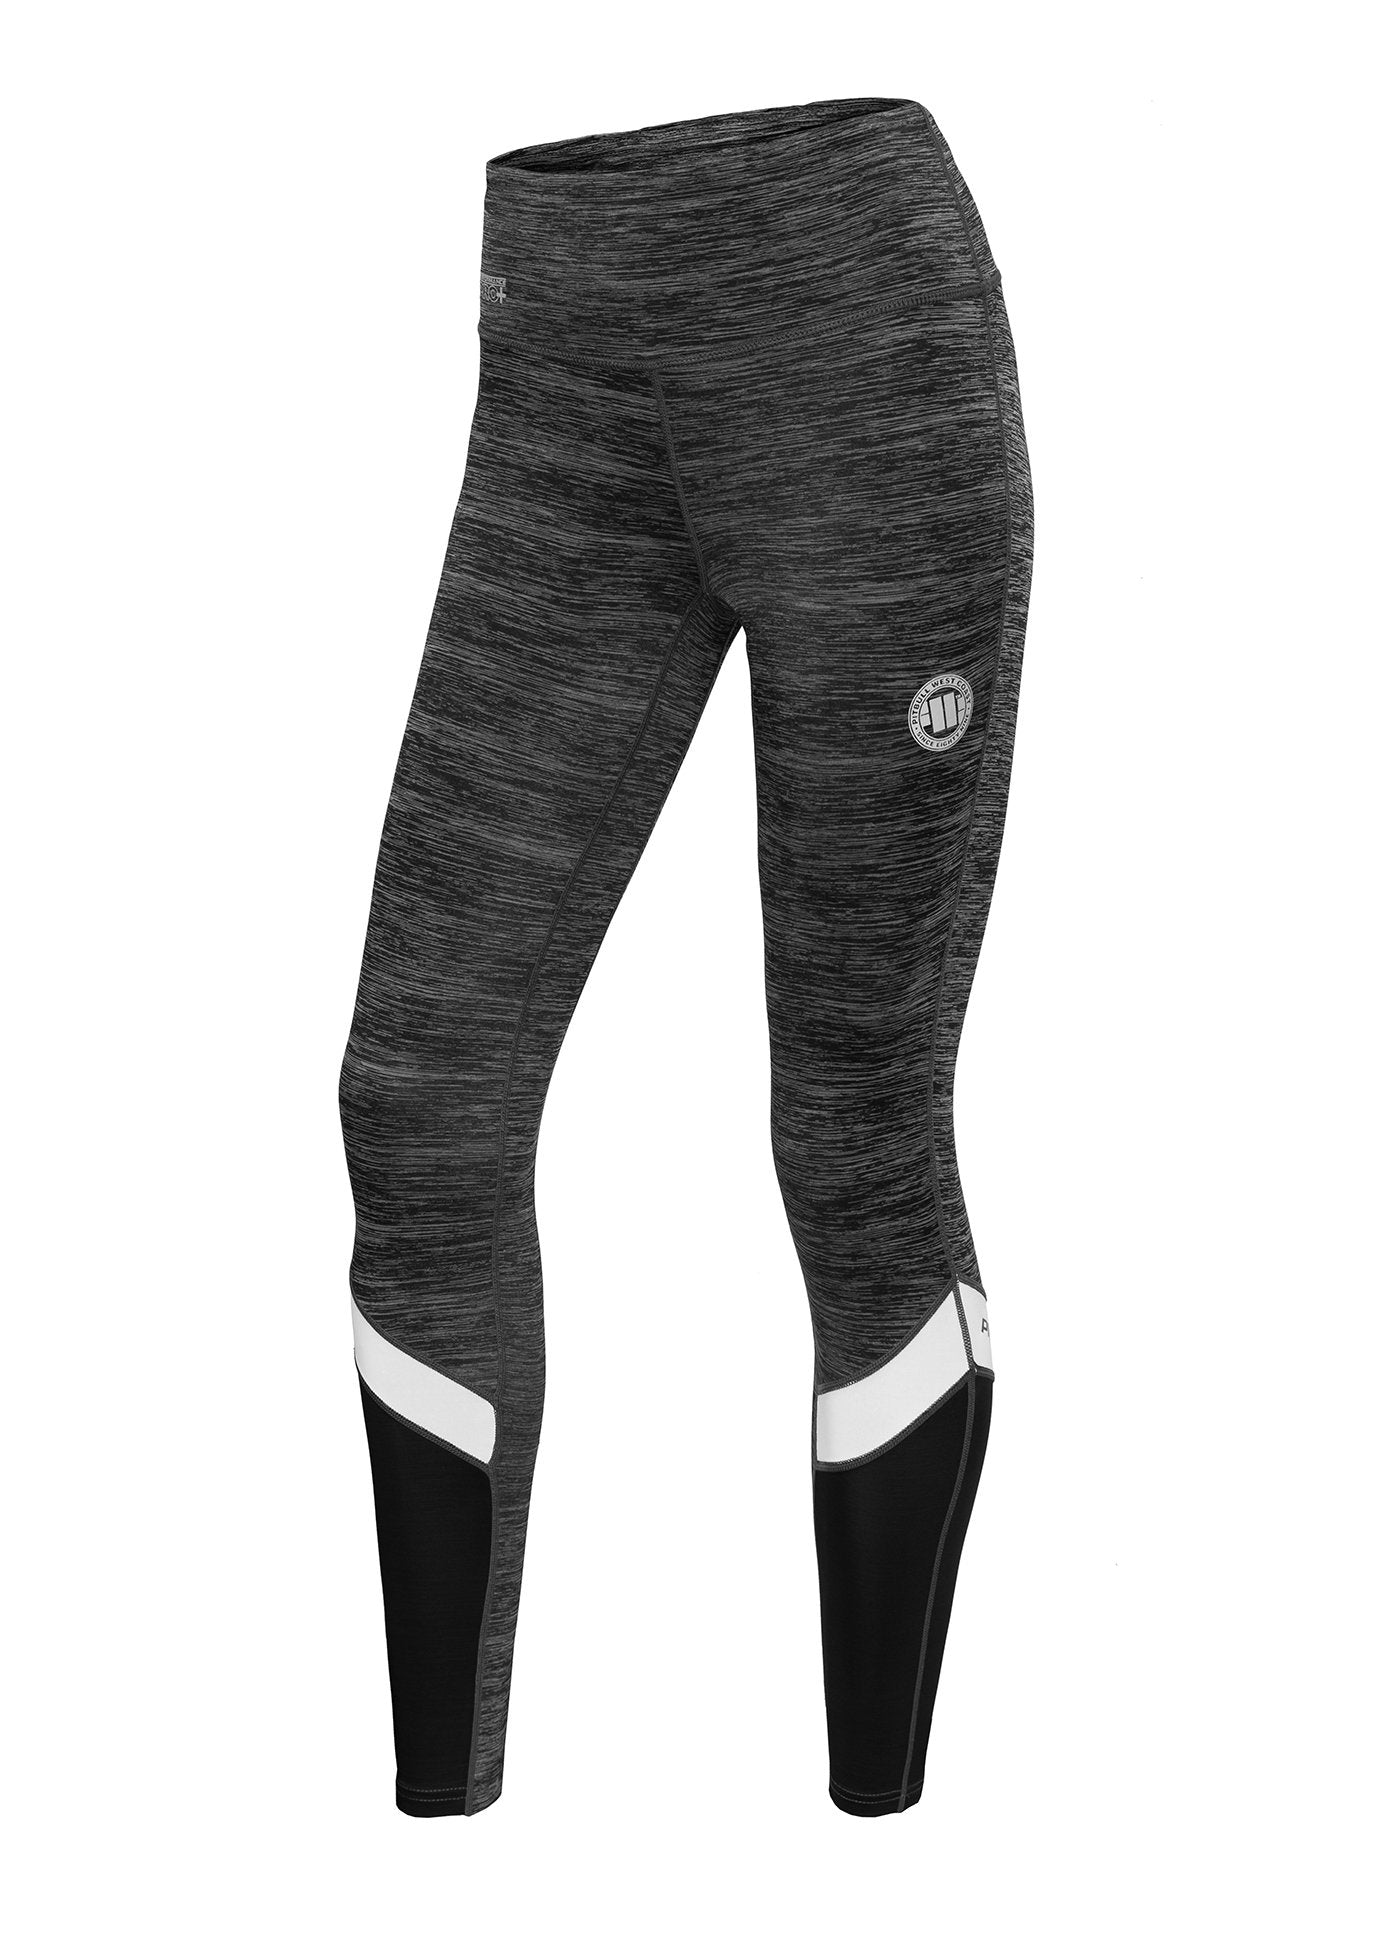 Women's Leggins Compression PRO PLUS MLG Charcoal Melange - Pitbull West Coast U.S.A.